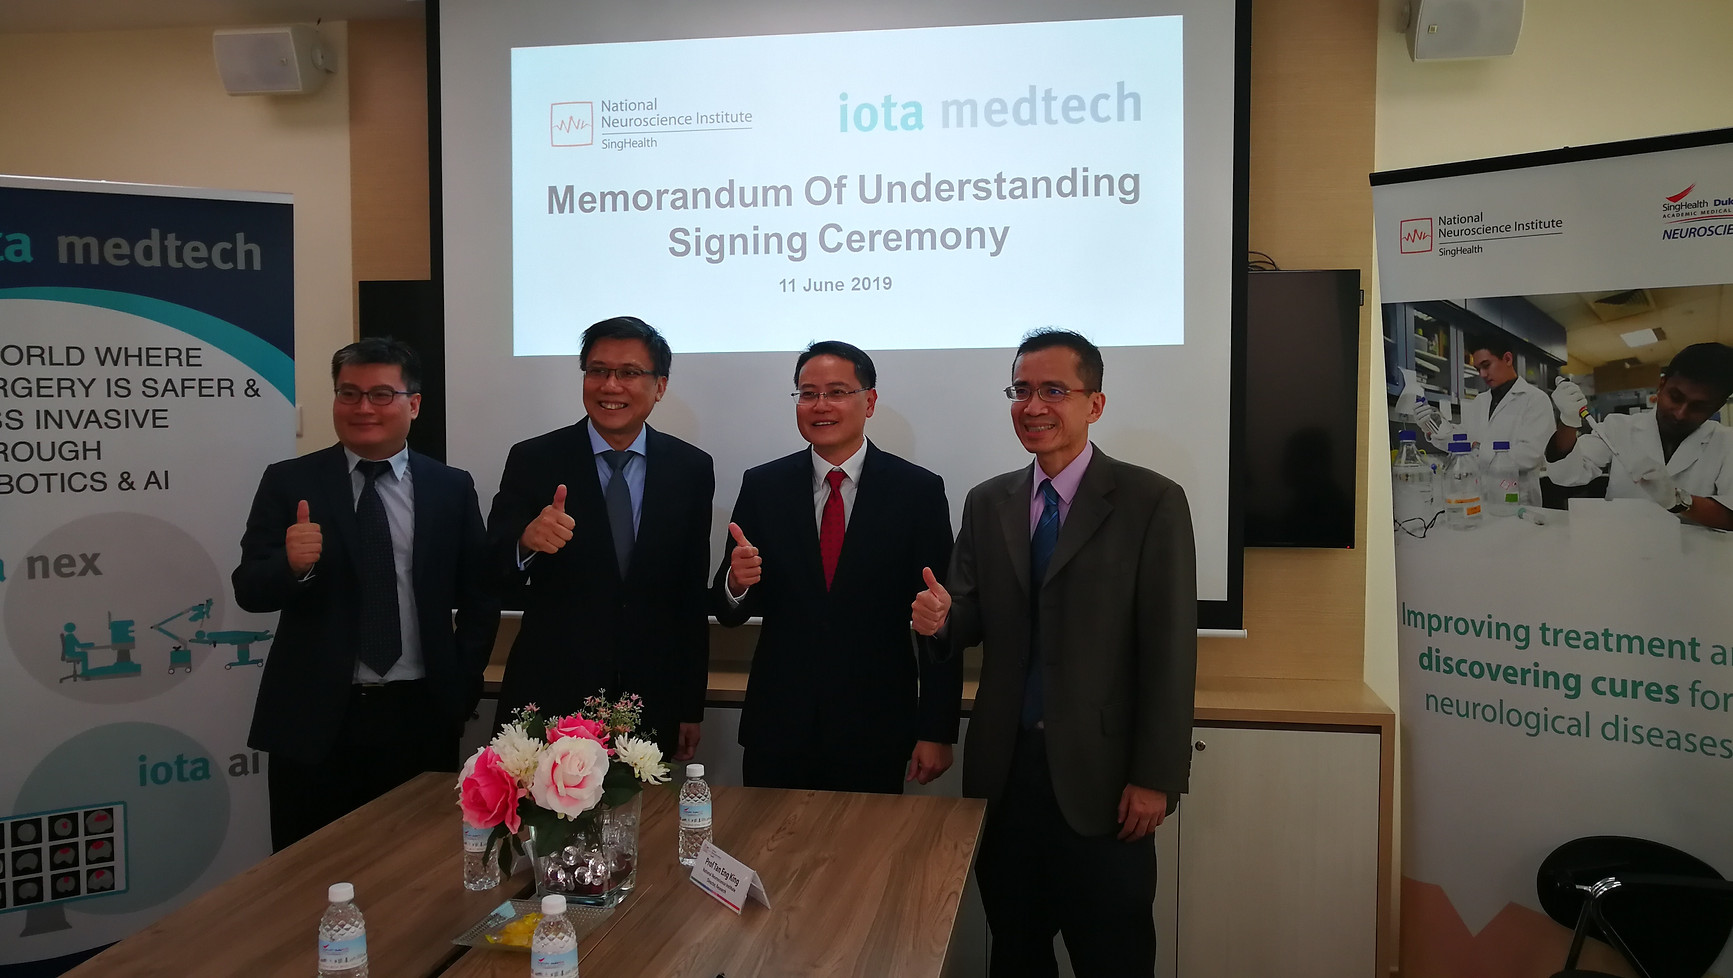 iota medtech NNI mou signing